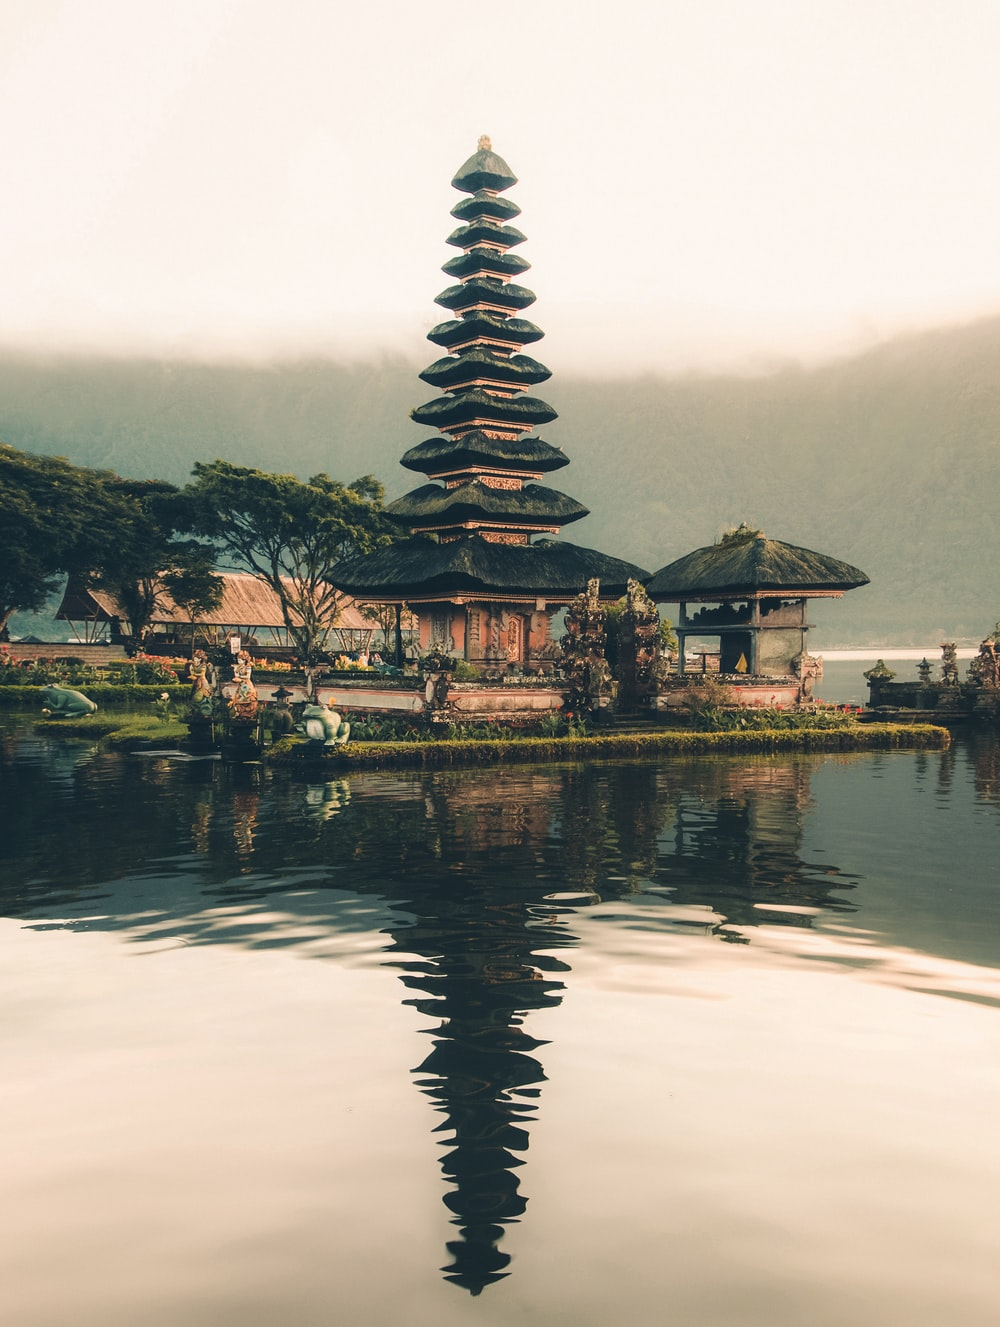 temple beside body of water and trees